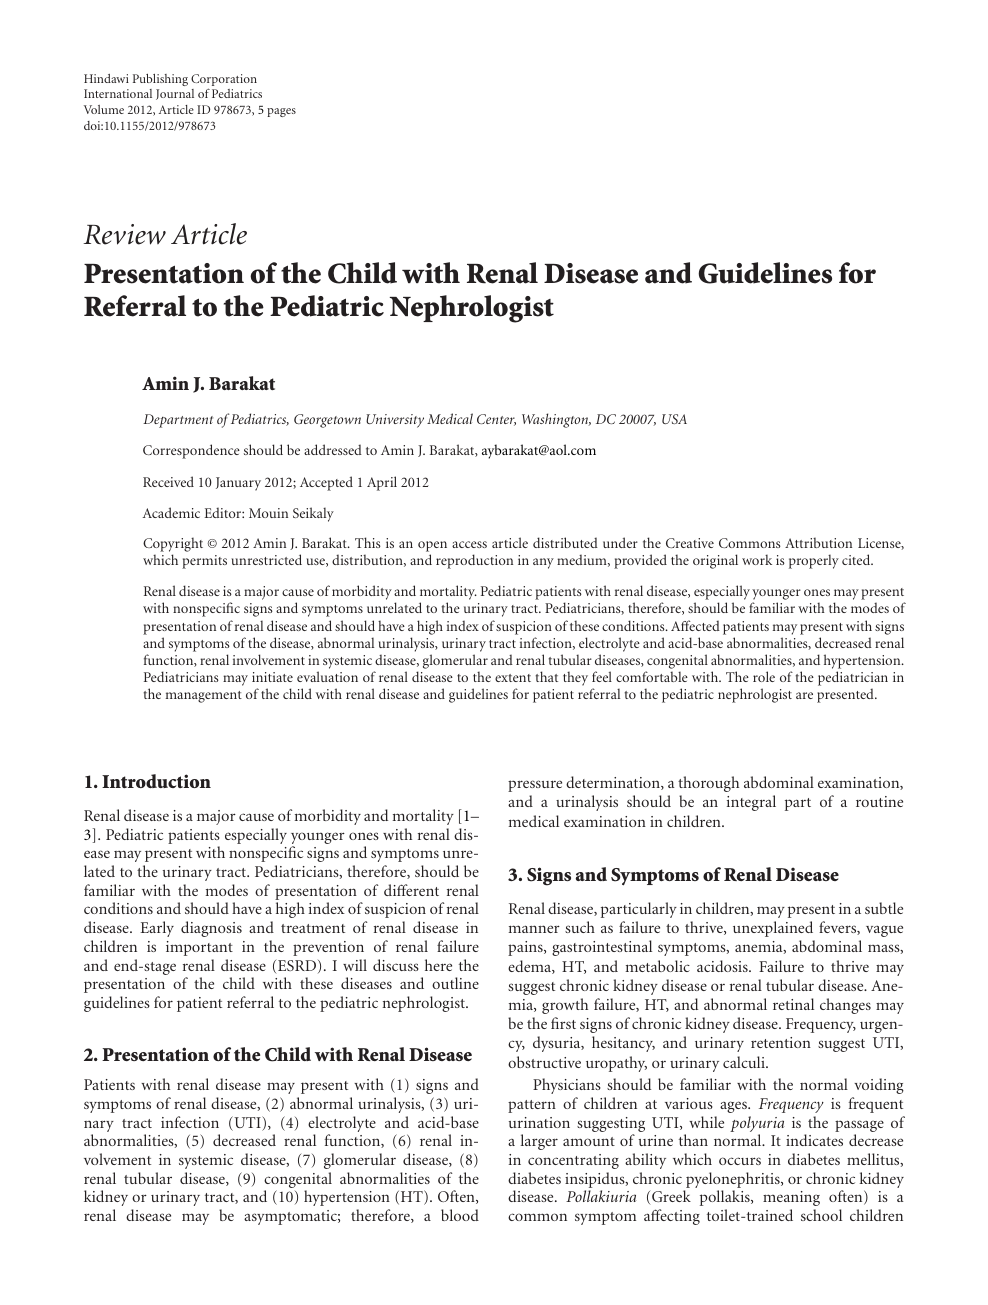 Presentation of the Child with Renal Disease and Guidelines